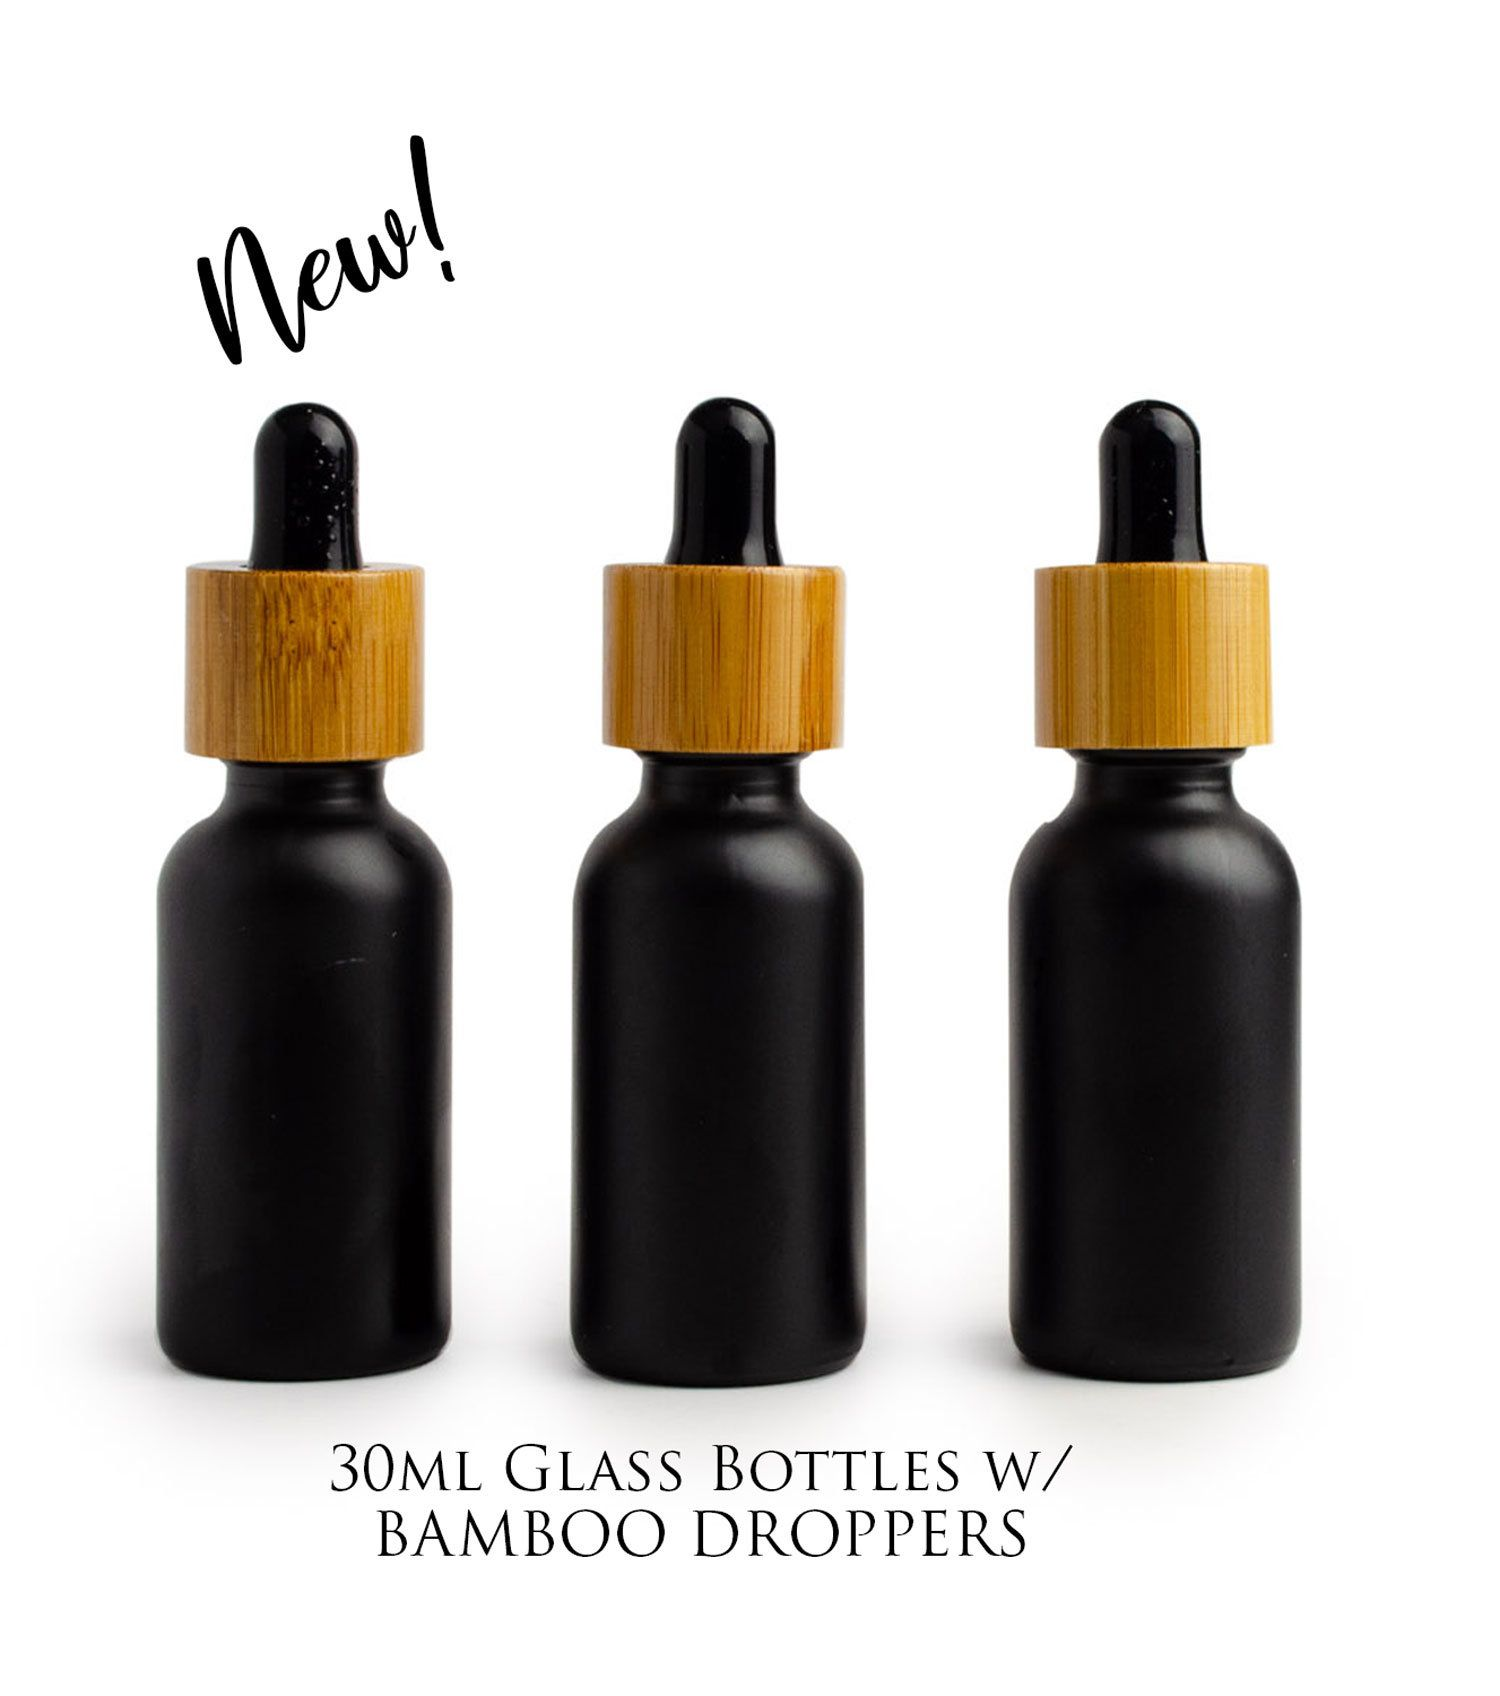 Single Black Matte 30ml Essential Oil Glass Bamboo Dropper Bottles 1 Oz Boston Round Shape White Or Black Bulbs Bottle Glass Dropper Bottles Tincture Bottles